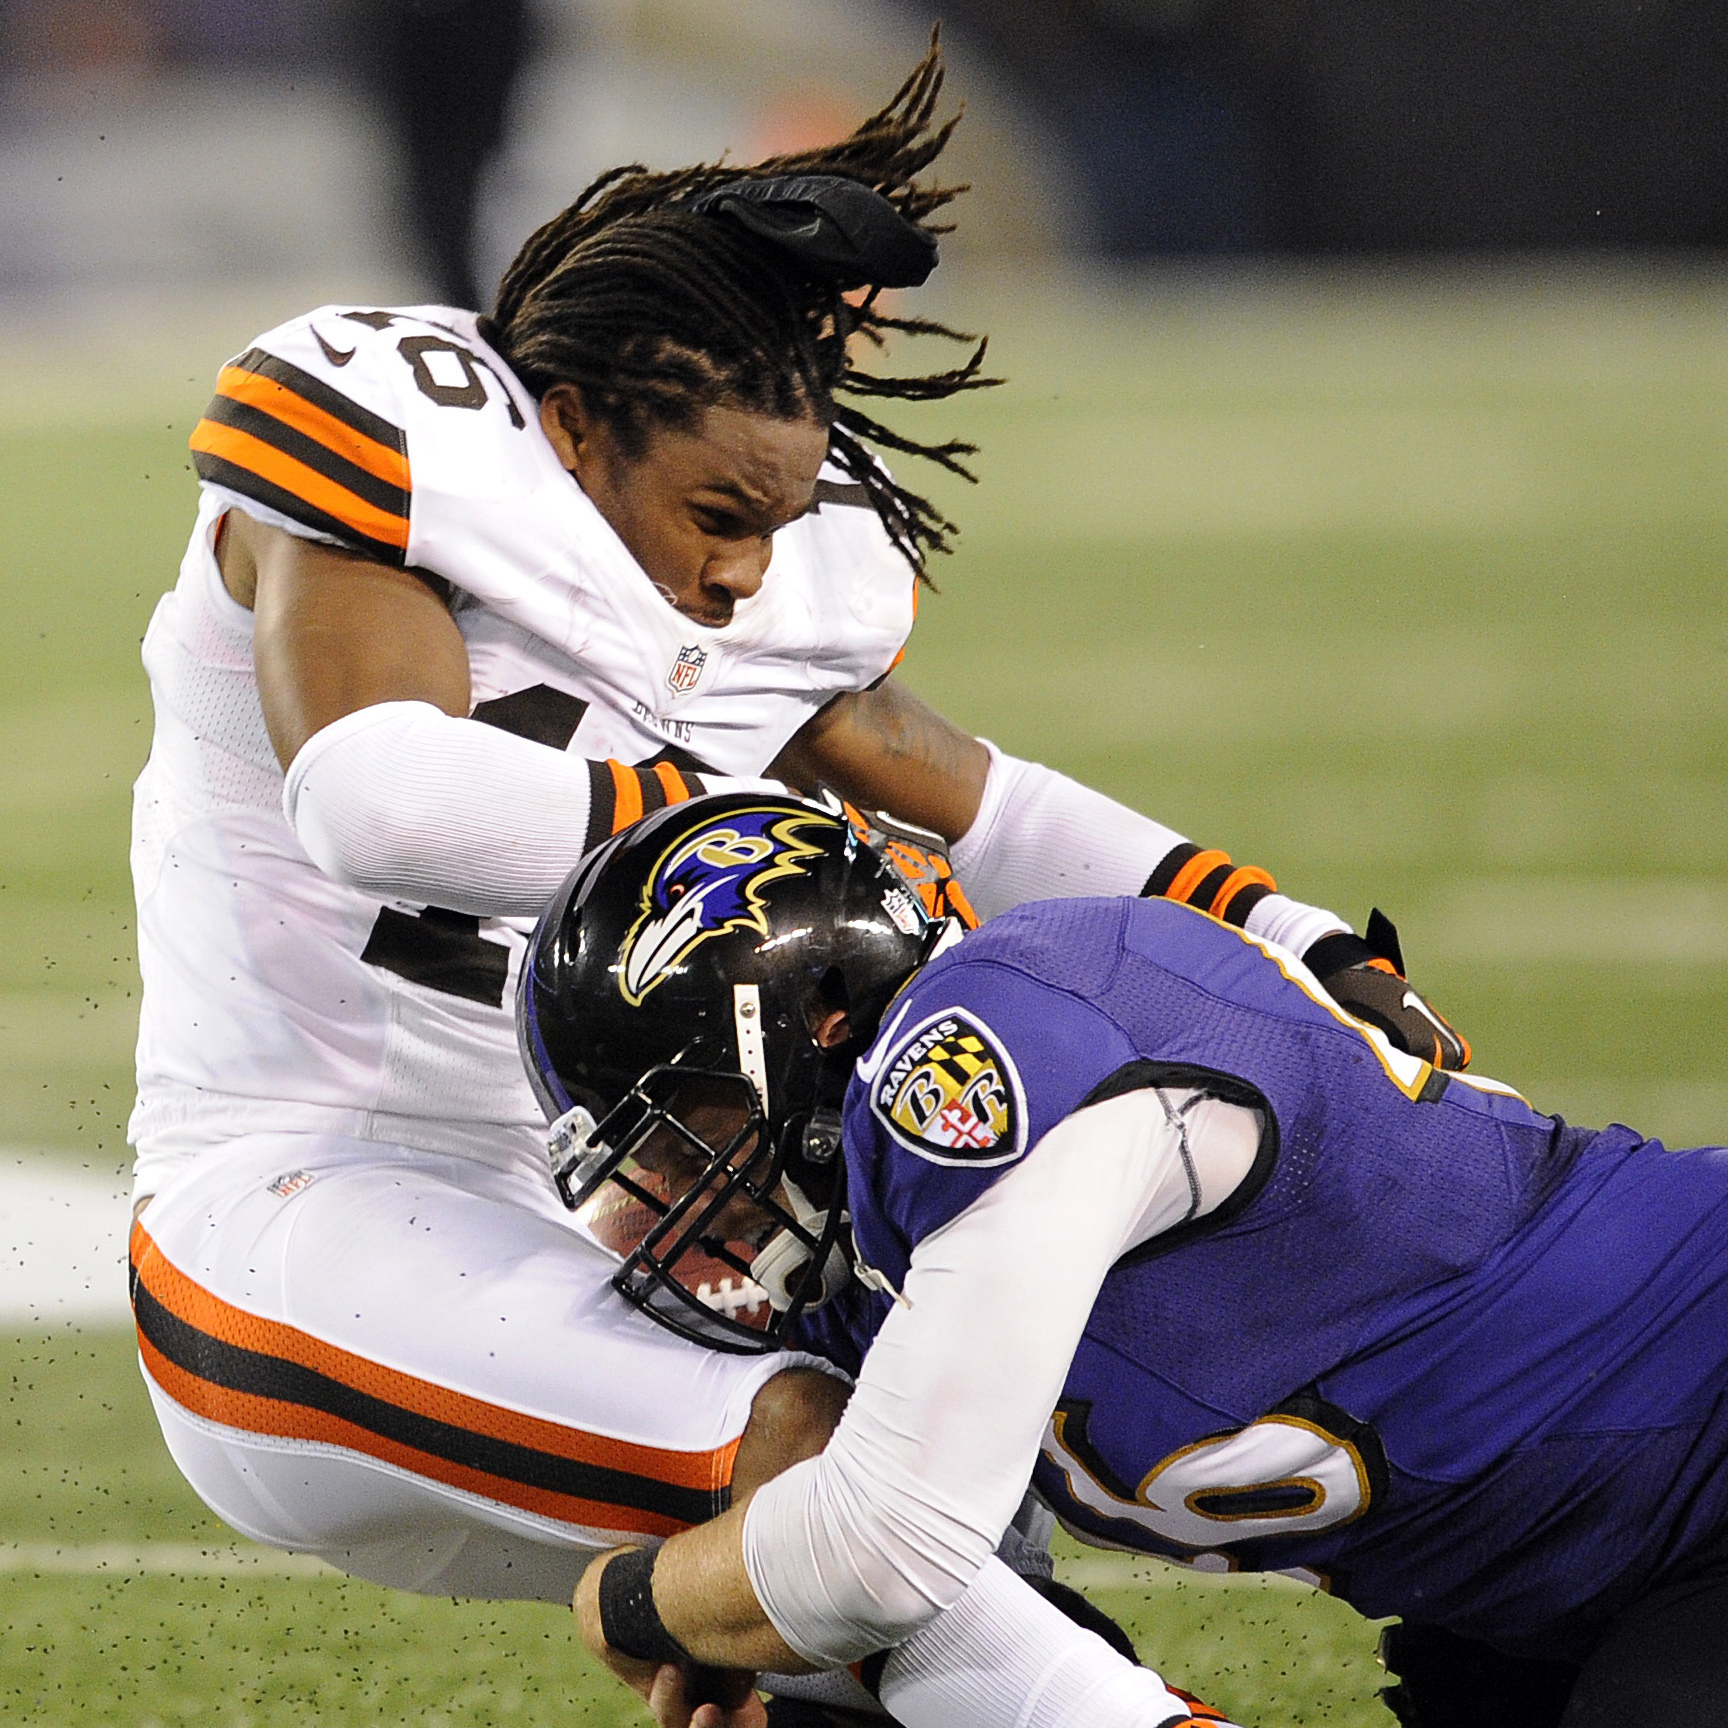 Baltimore Ravens Morgan Cox tackles Cleveland Browns wide receiver Josh Cribbs as Cribbs' helmet is dislodged from a hit by another player in a game last September.